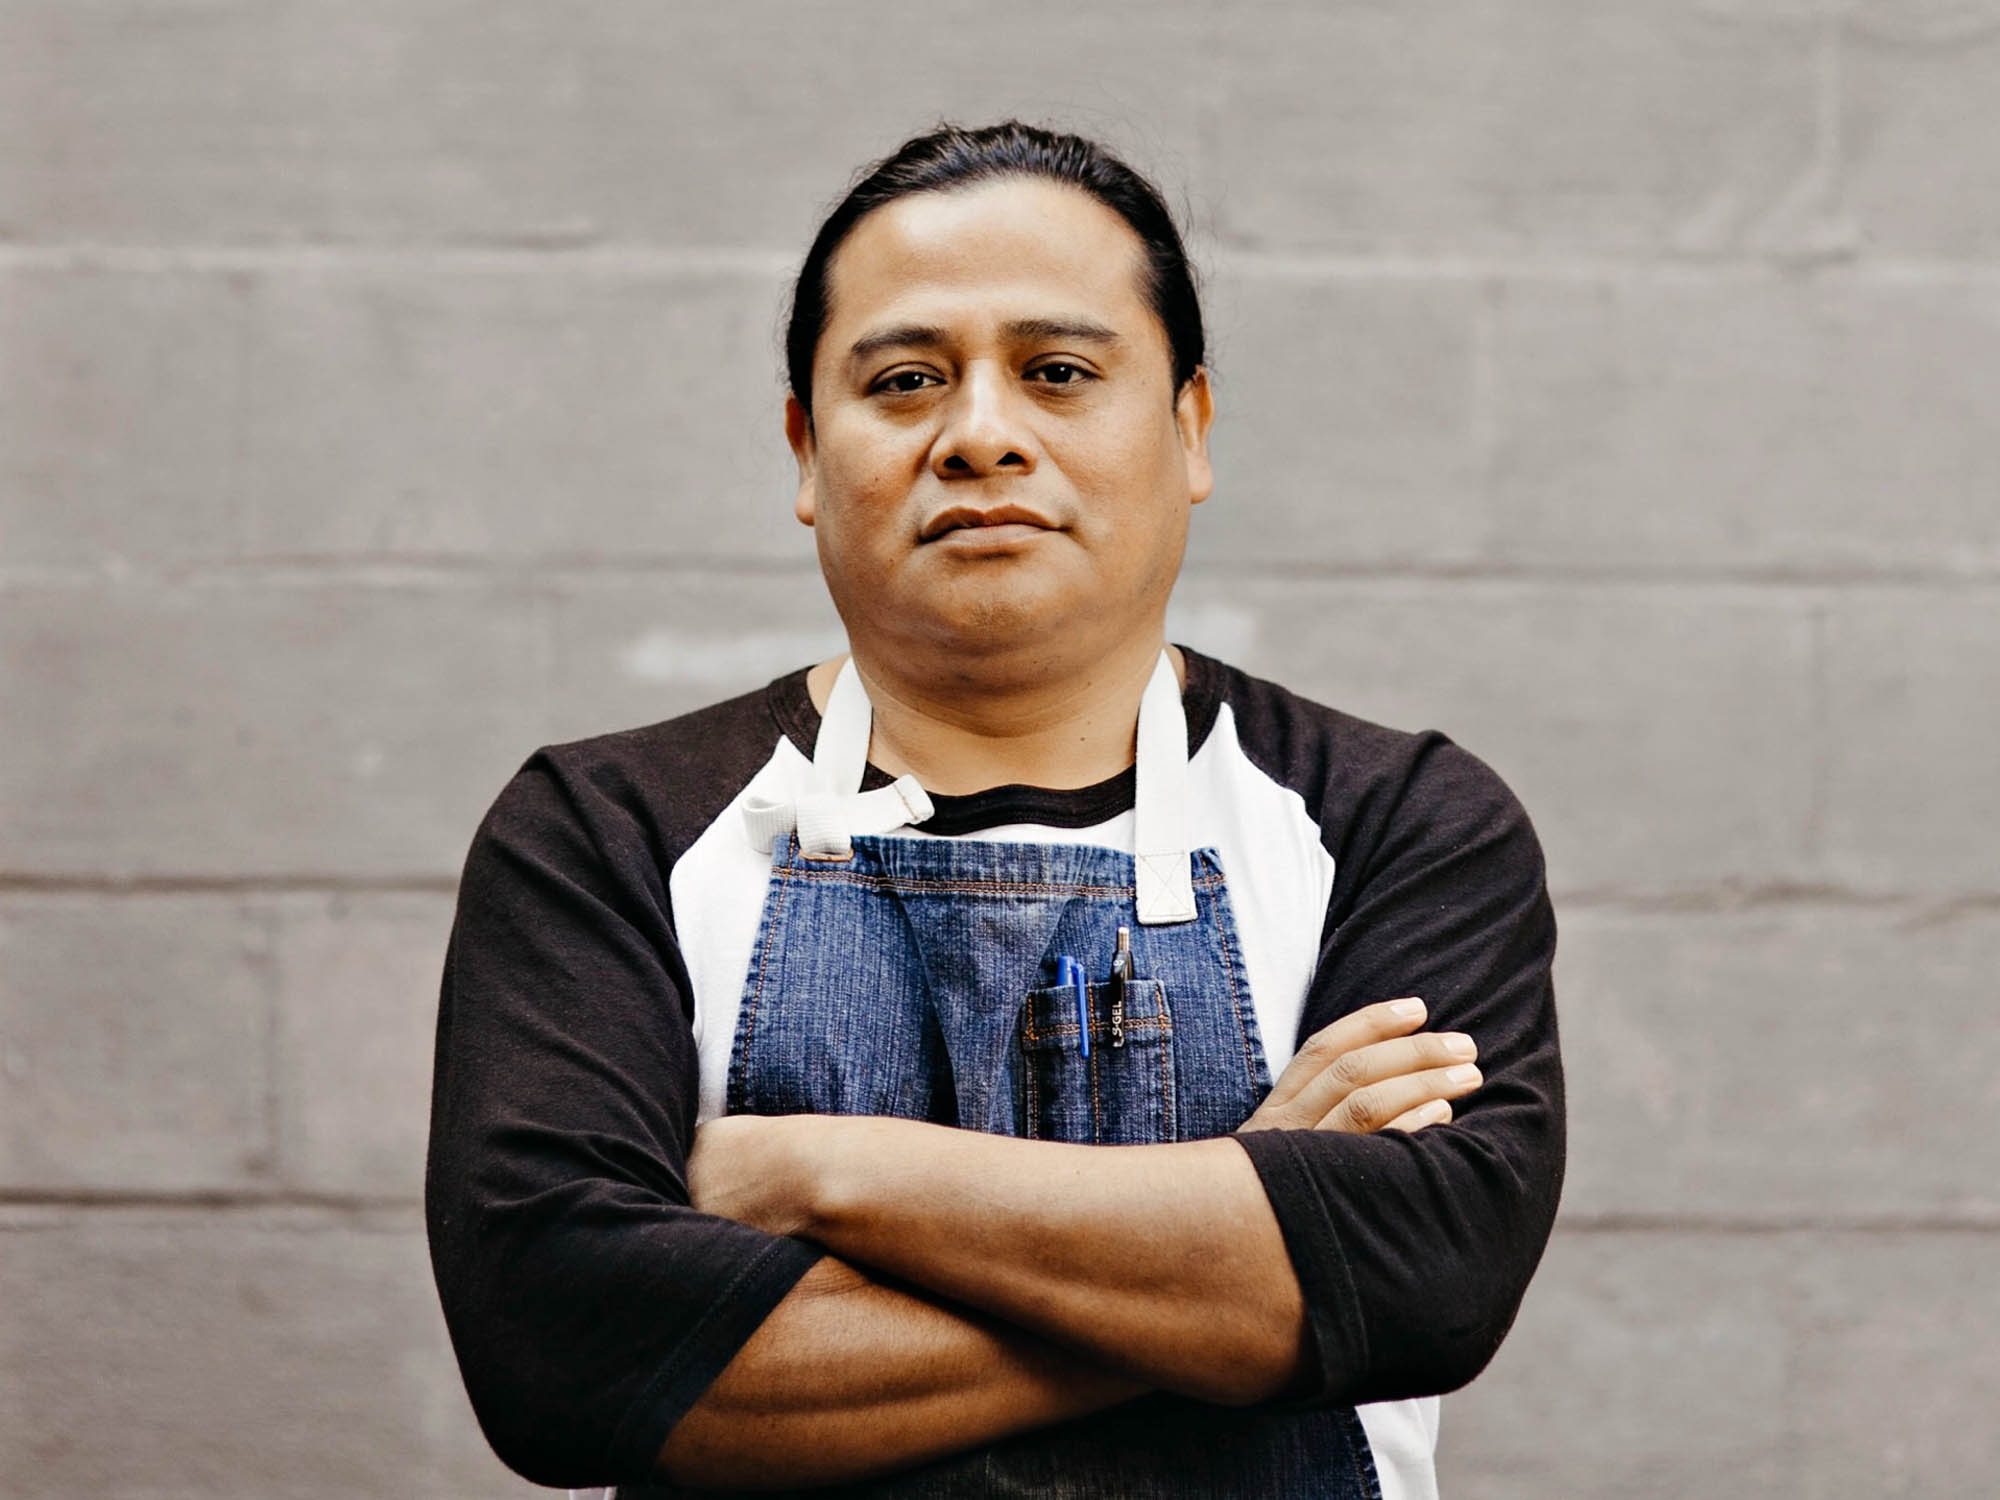 portrait of Neftalí Durán: chef, educator, and cofounder of I-Collective